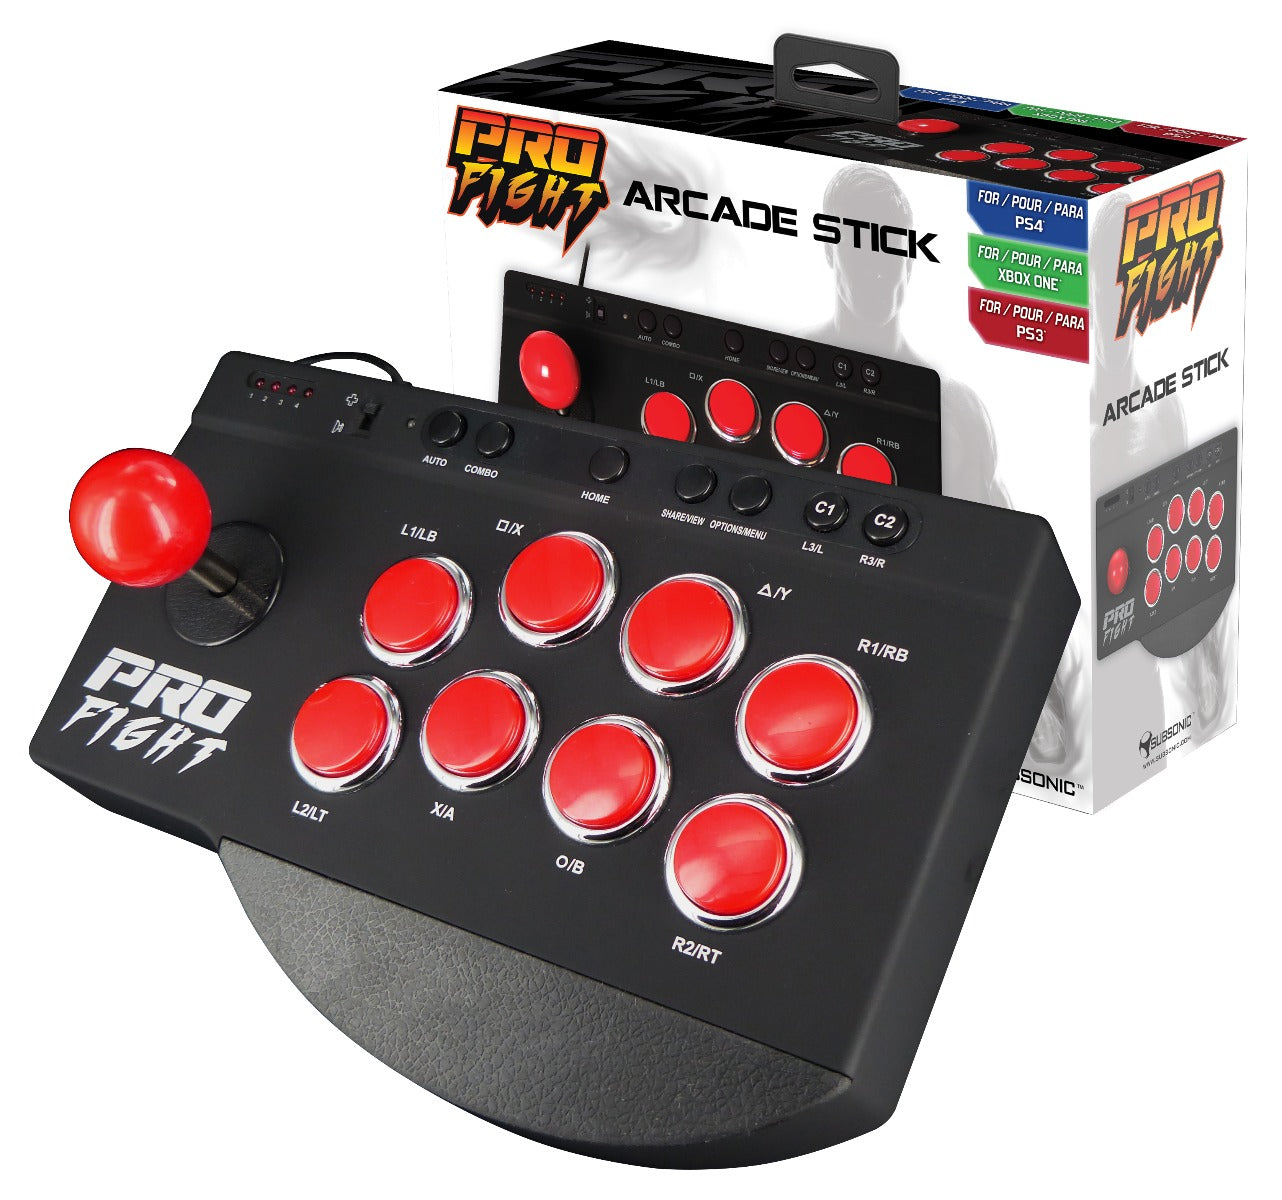 Subsonic Pro Fight Arcade Stick For Playstation 3 / 4 PS3 / PS4 & Xbox One - SUB-5416